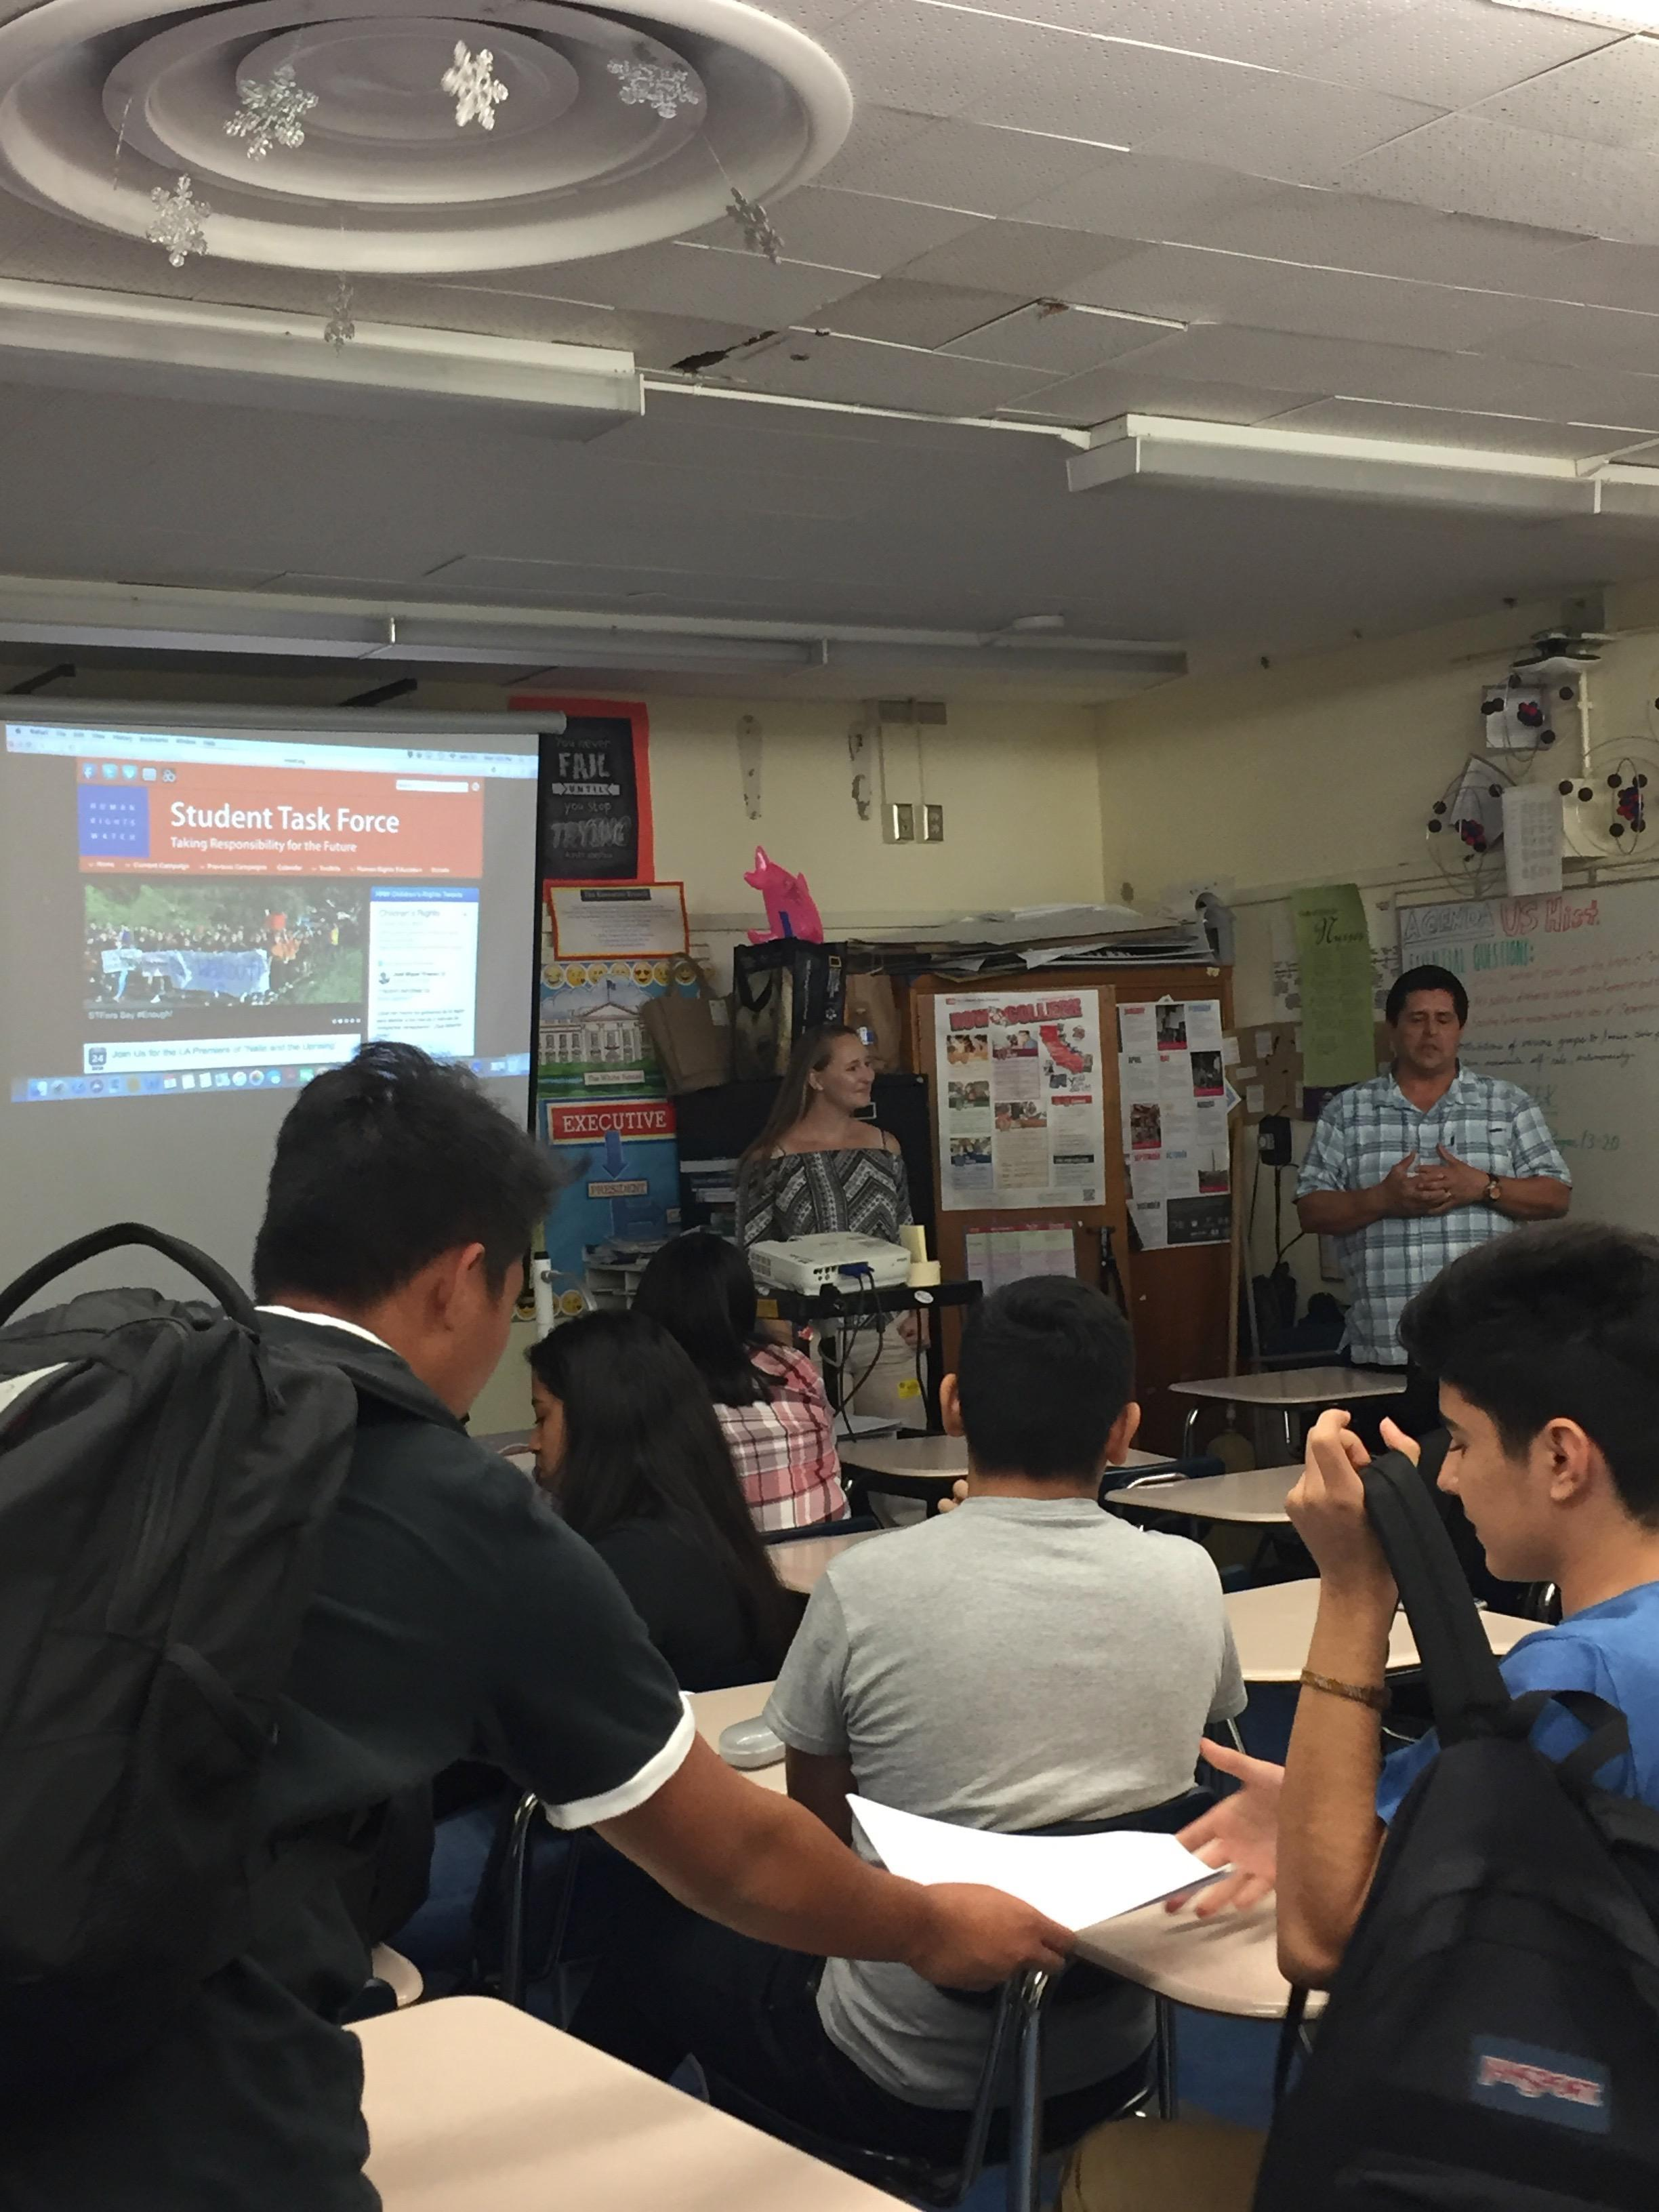 AMA & CARSON H. S. STUDENTS CARE ABOUT HUMAN RIGHTS ISSUES